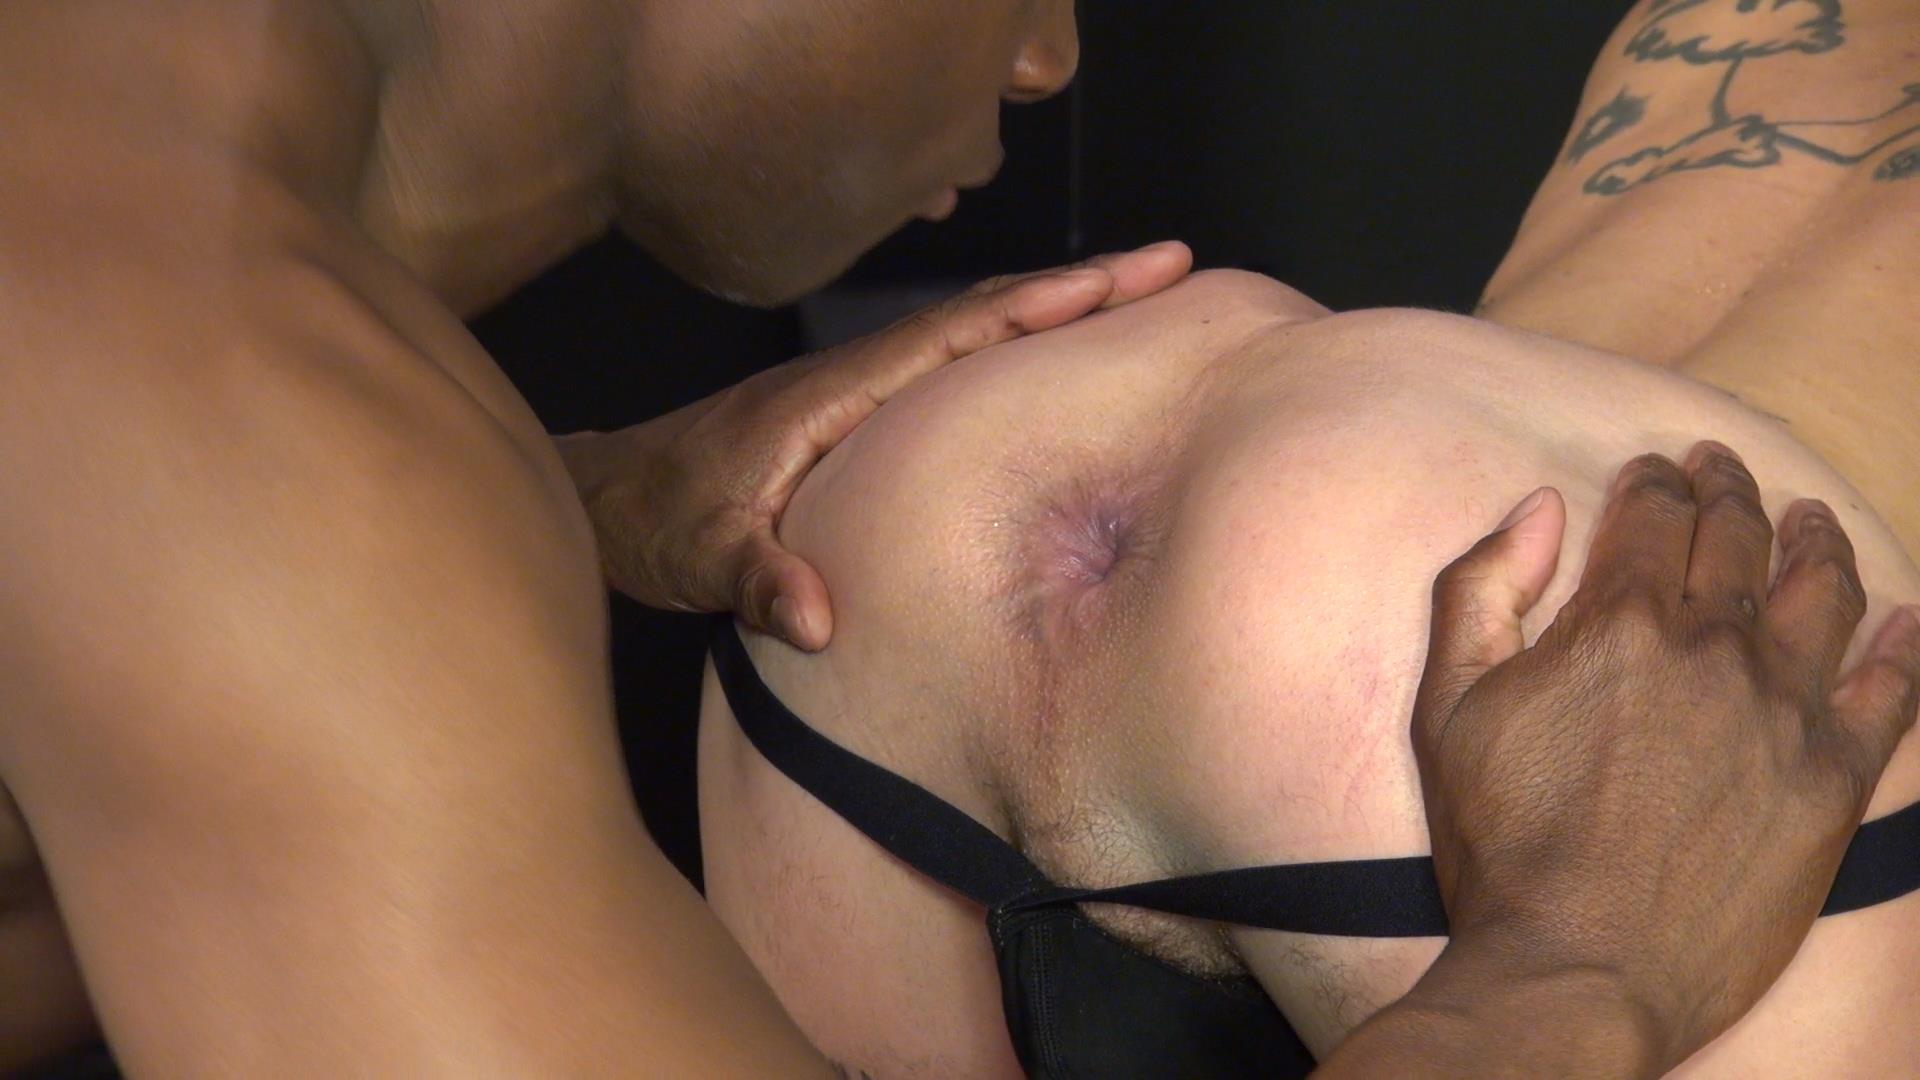 Black gay boyz butthole stuffing